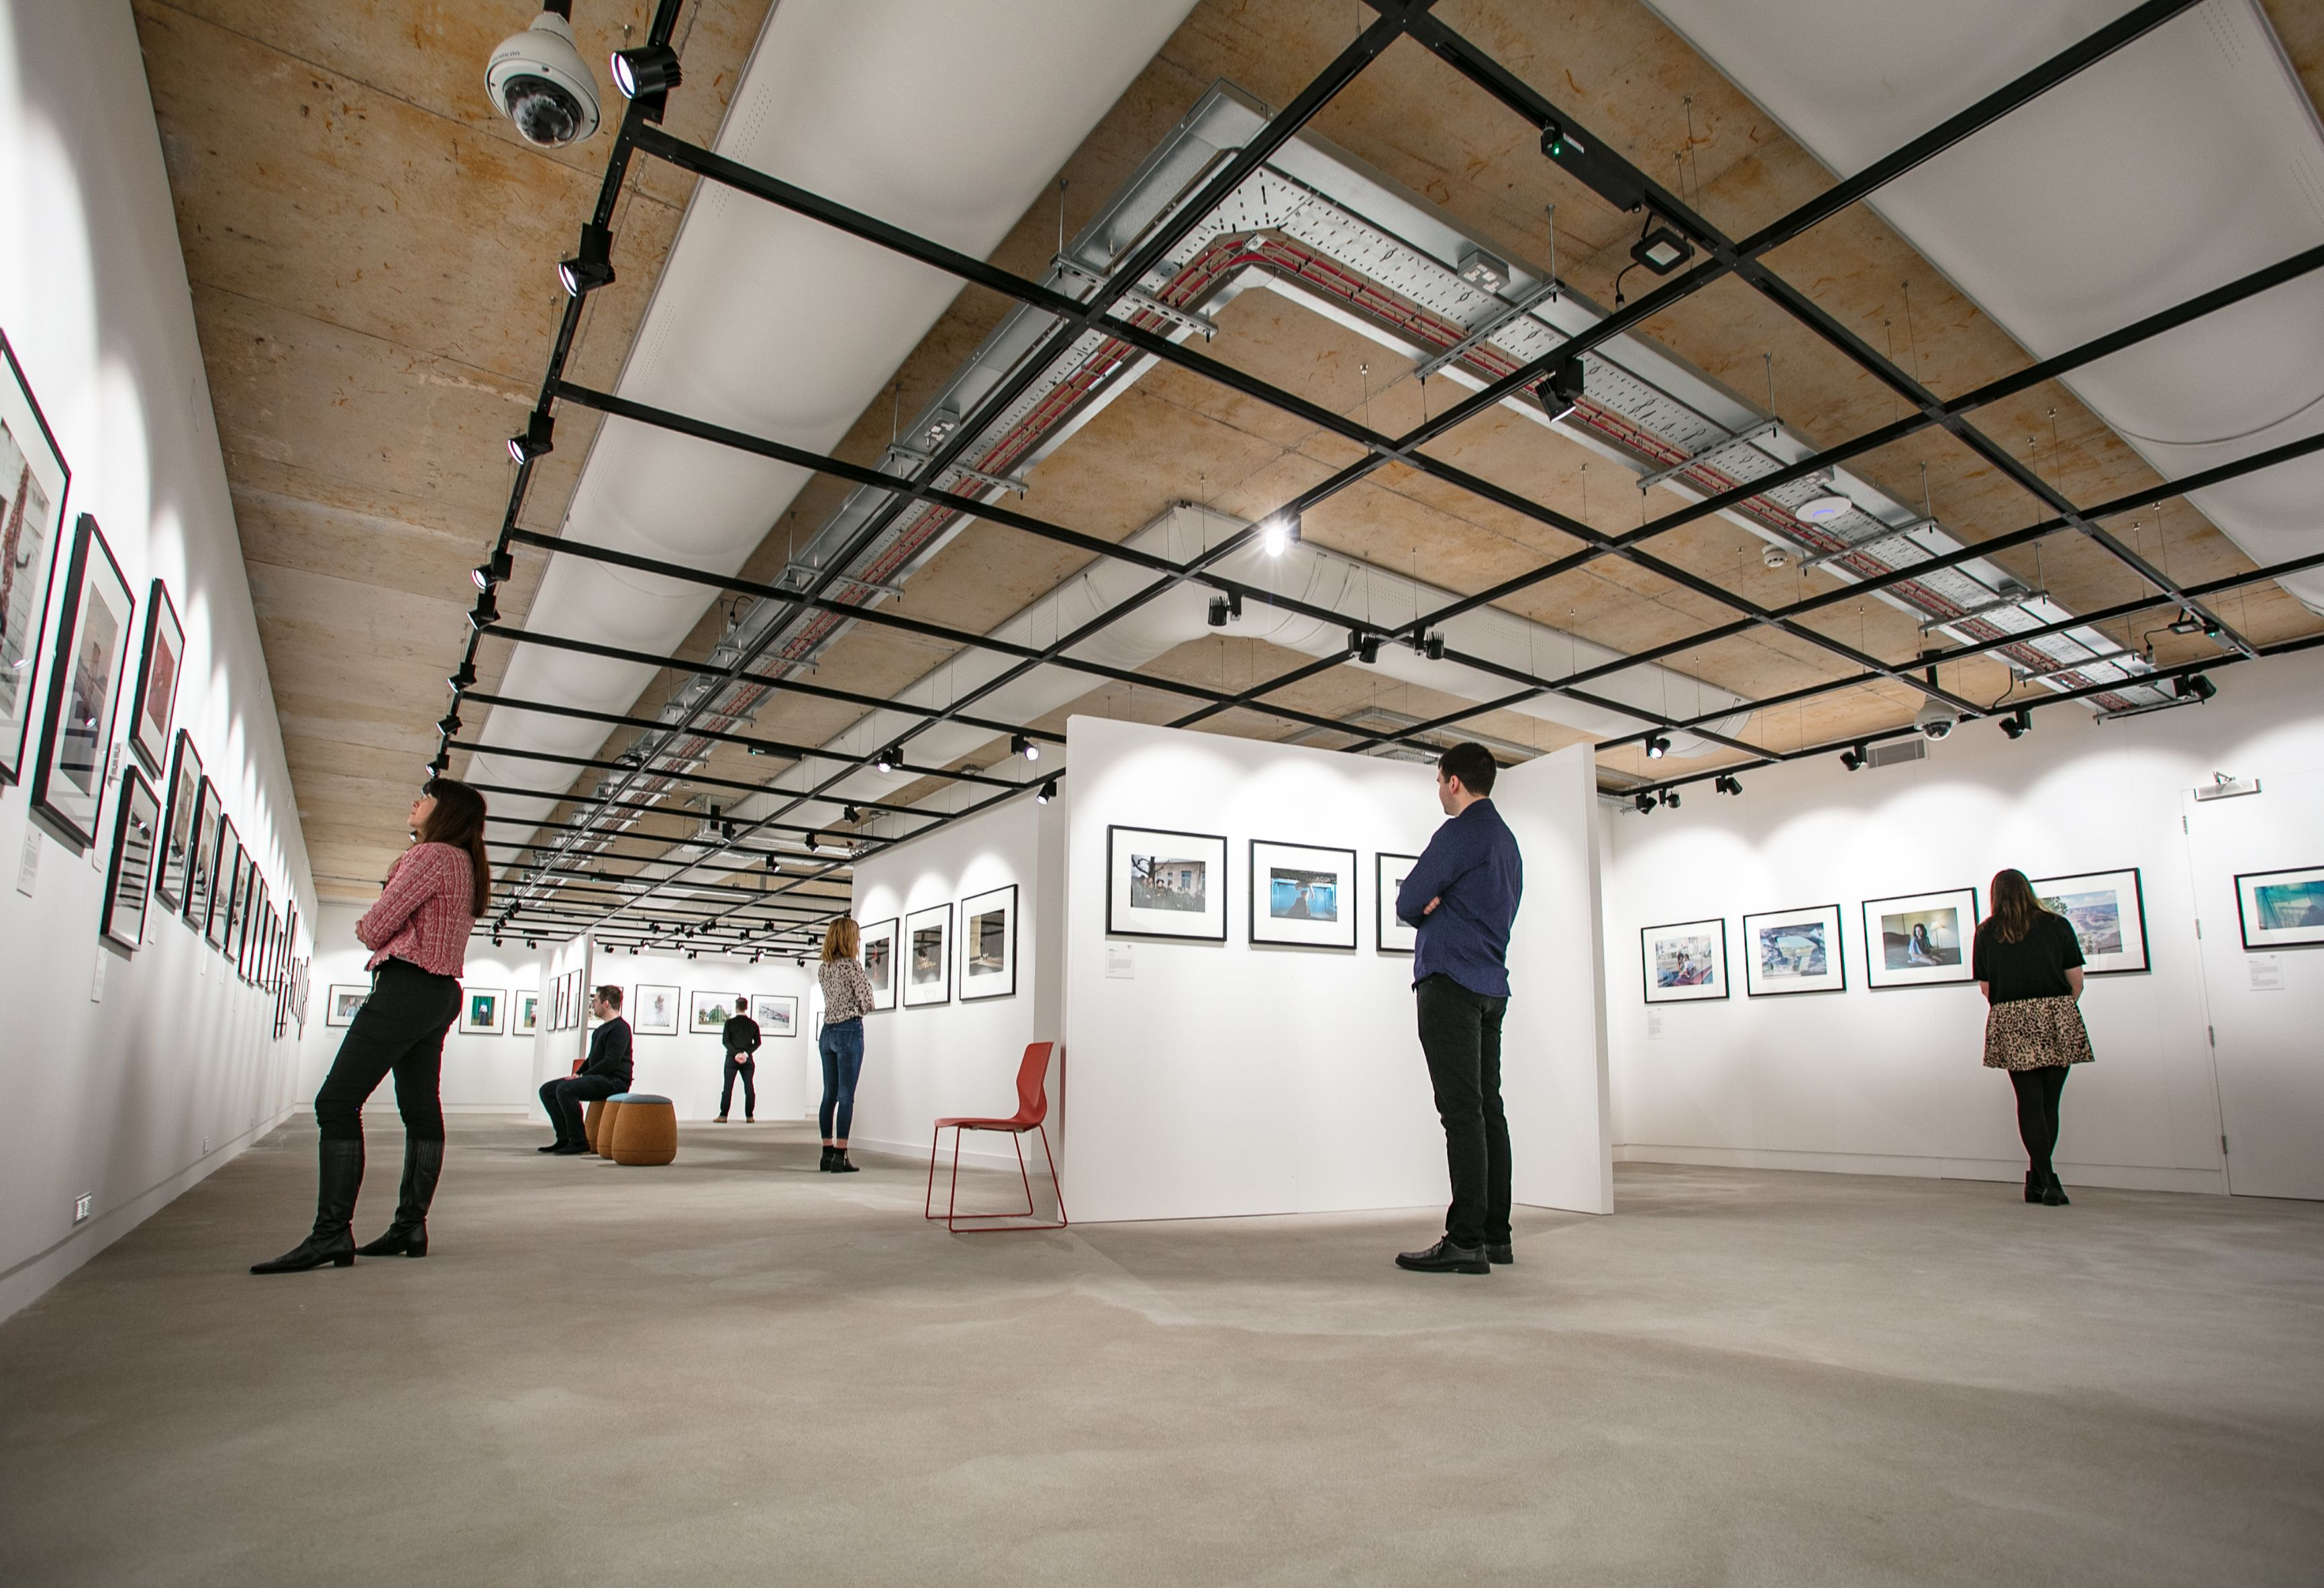 Royal Photographic Society Office Design Case Study